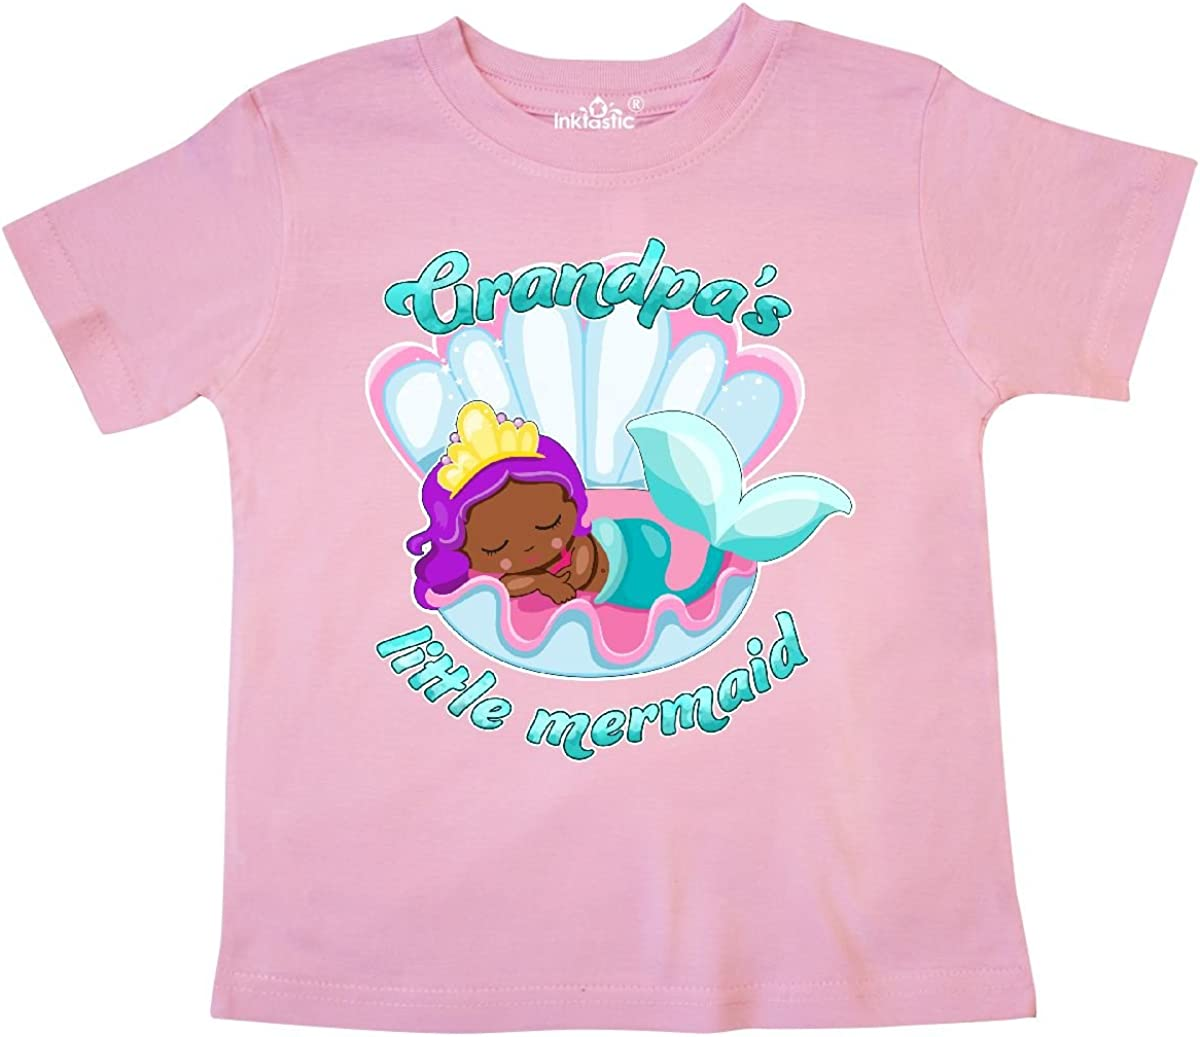 inktastic Grandpas Little Mermaid Toddler T-Shirt